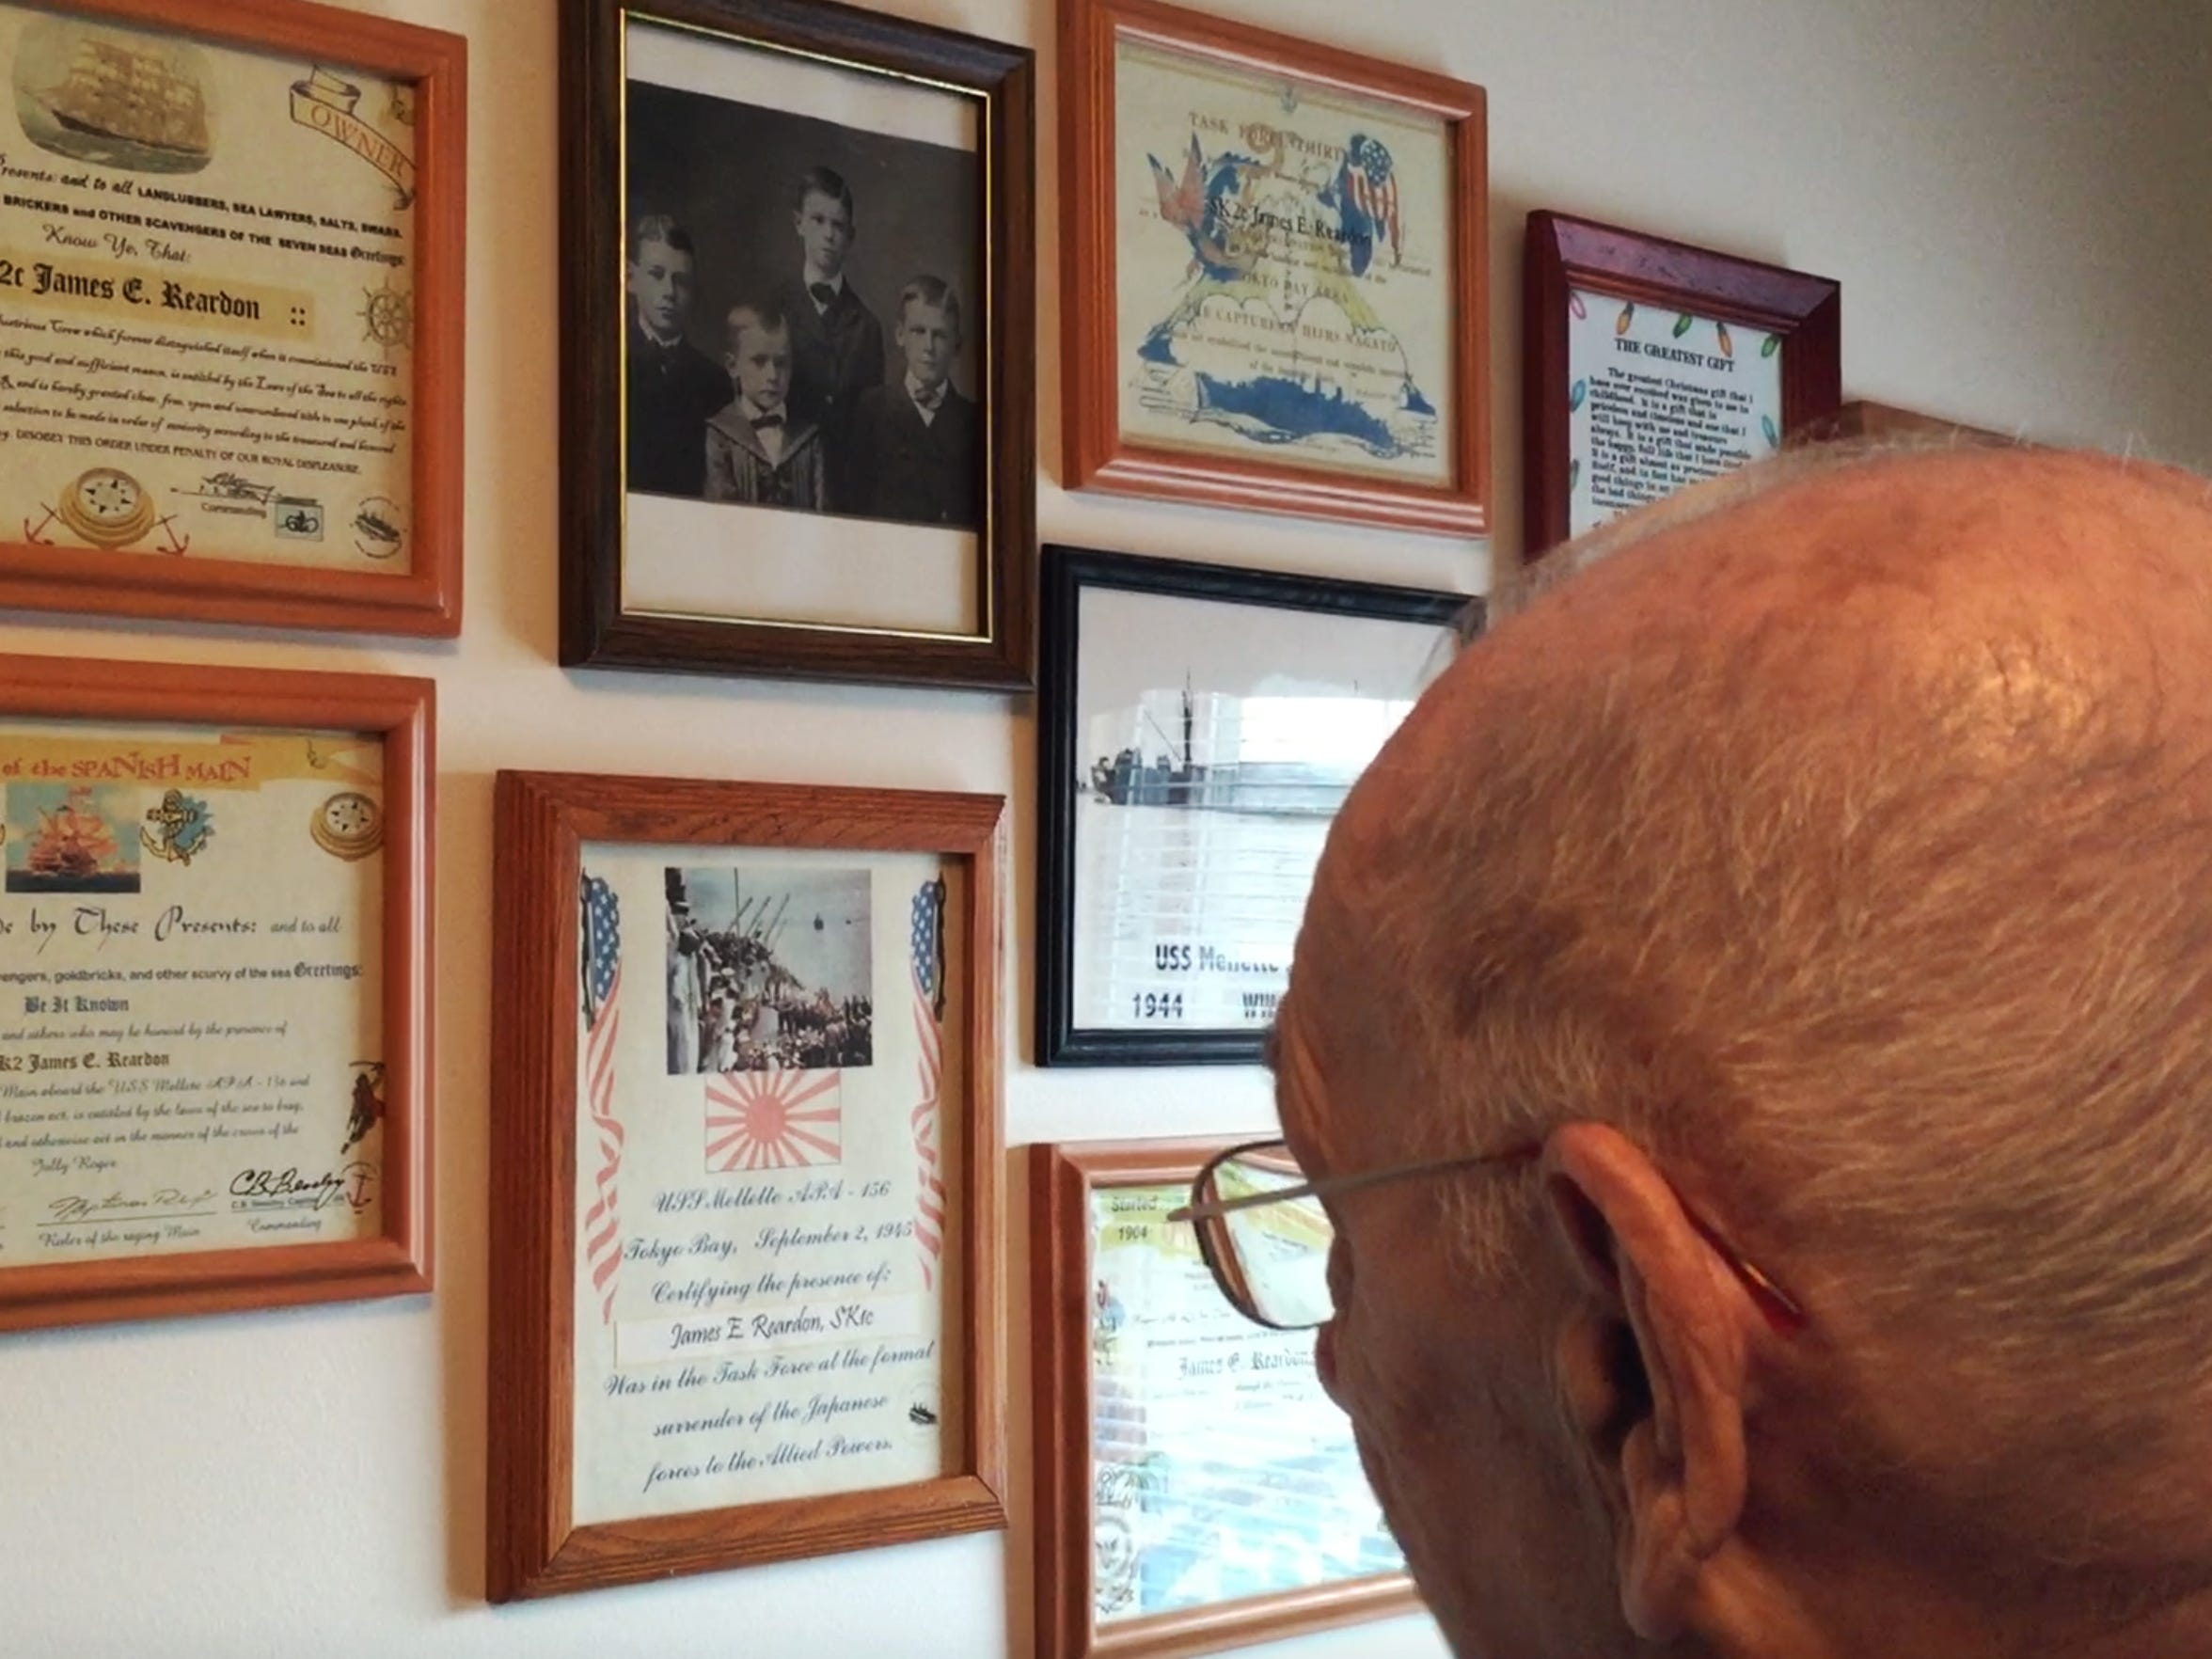 In his home, James Reardon displays certificates for crossing the equator and the international dateline along with other naval awards.